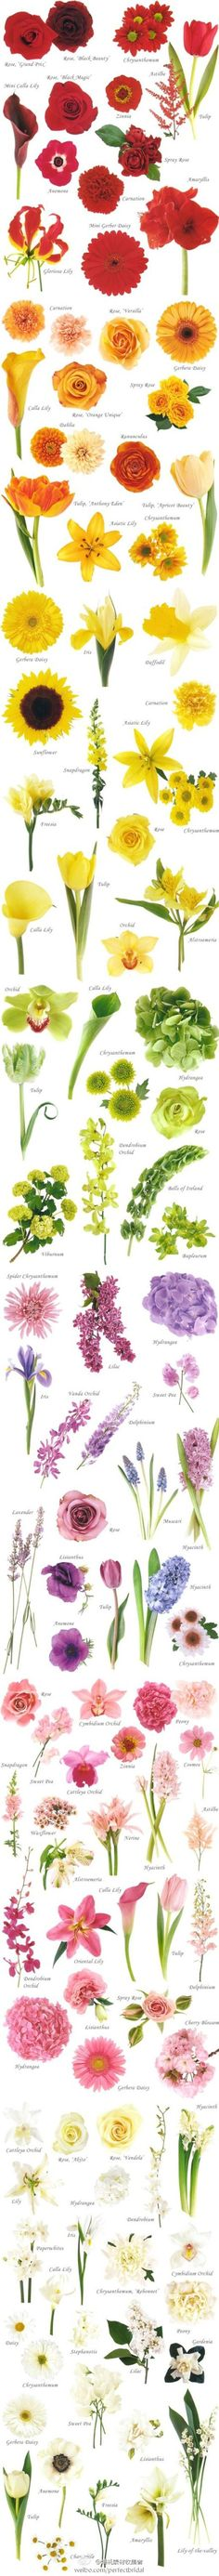 Flower Chart... Handy Chrysanthemums, Anemones, Ranunculus, Peonies, Flowers For Each Month, List Of Flowers, Wedding Flowers, Diy Wedding Bouquet, Diy Bouquet